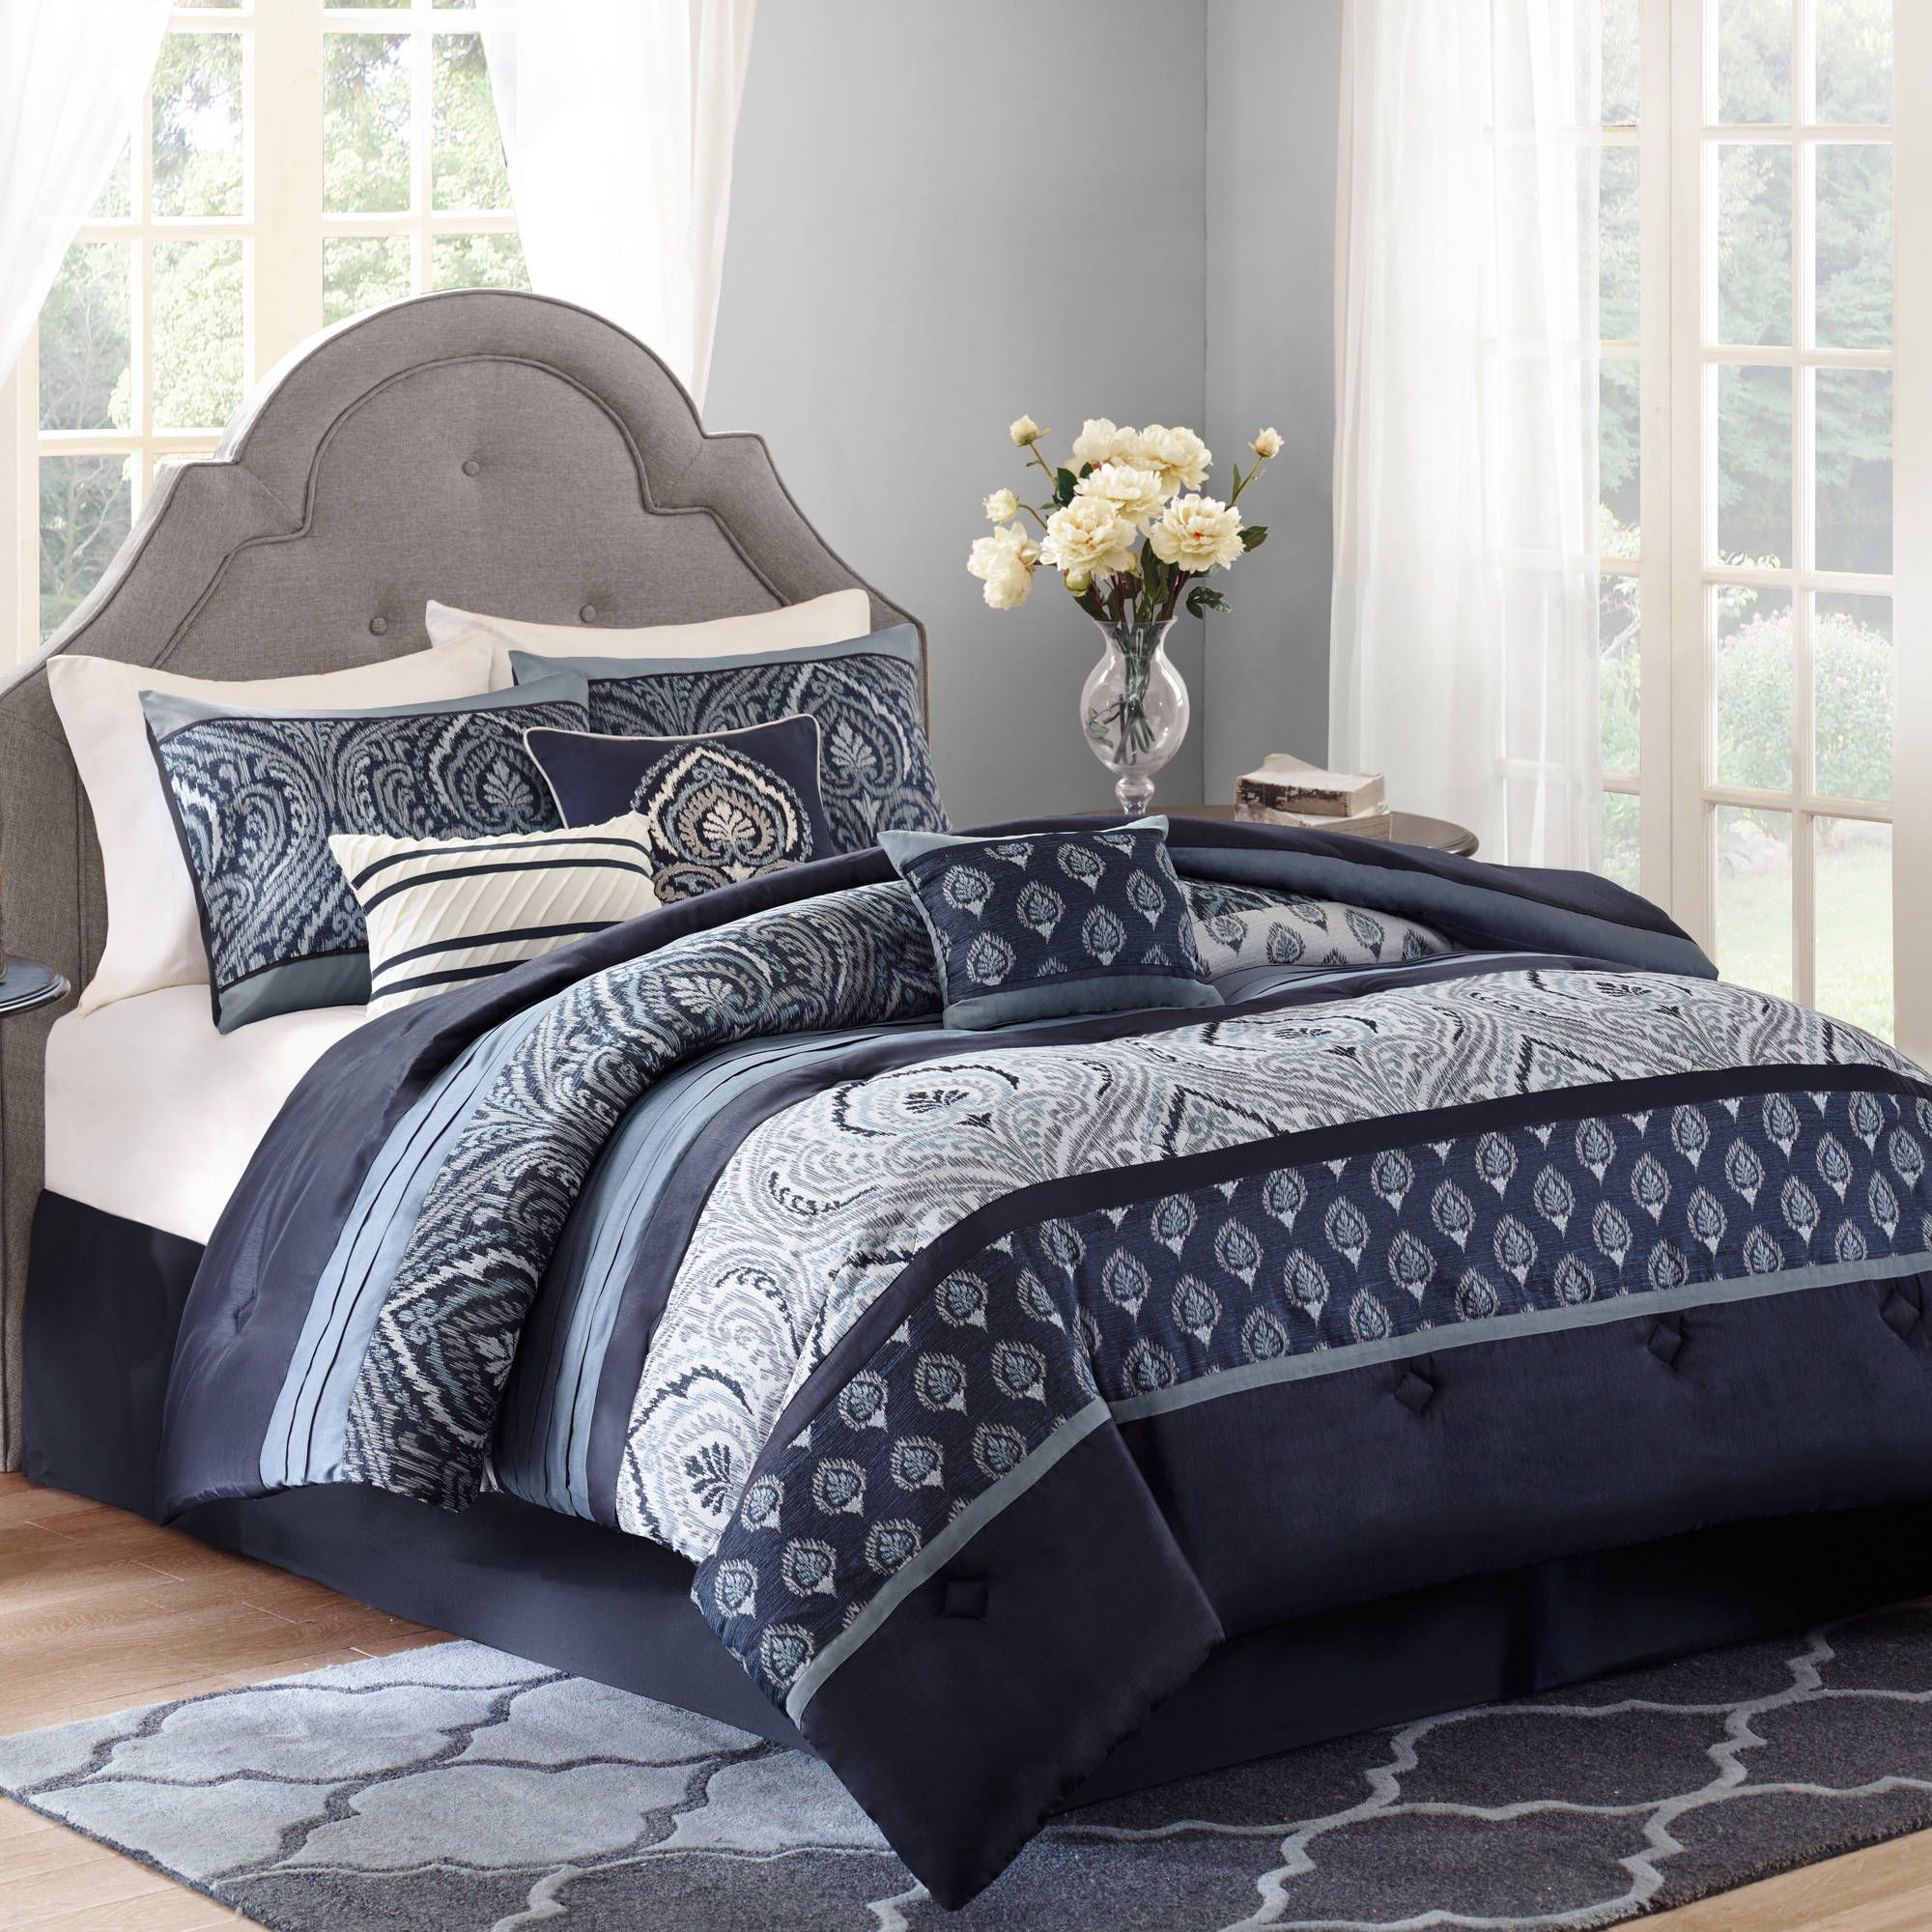 Search and Shopping more Bedding Deals at